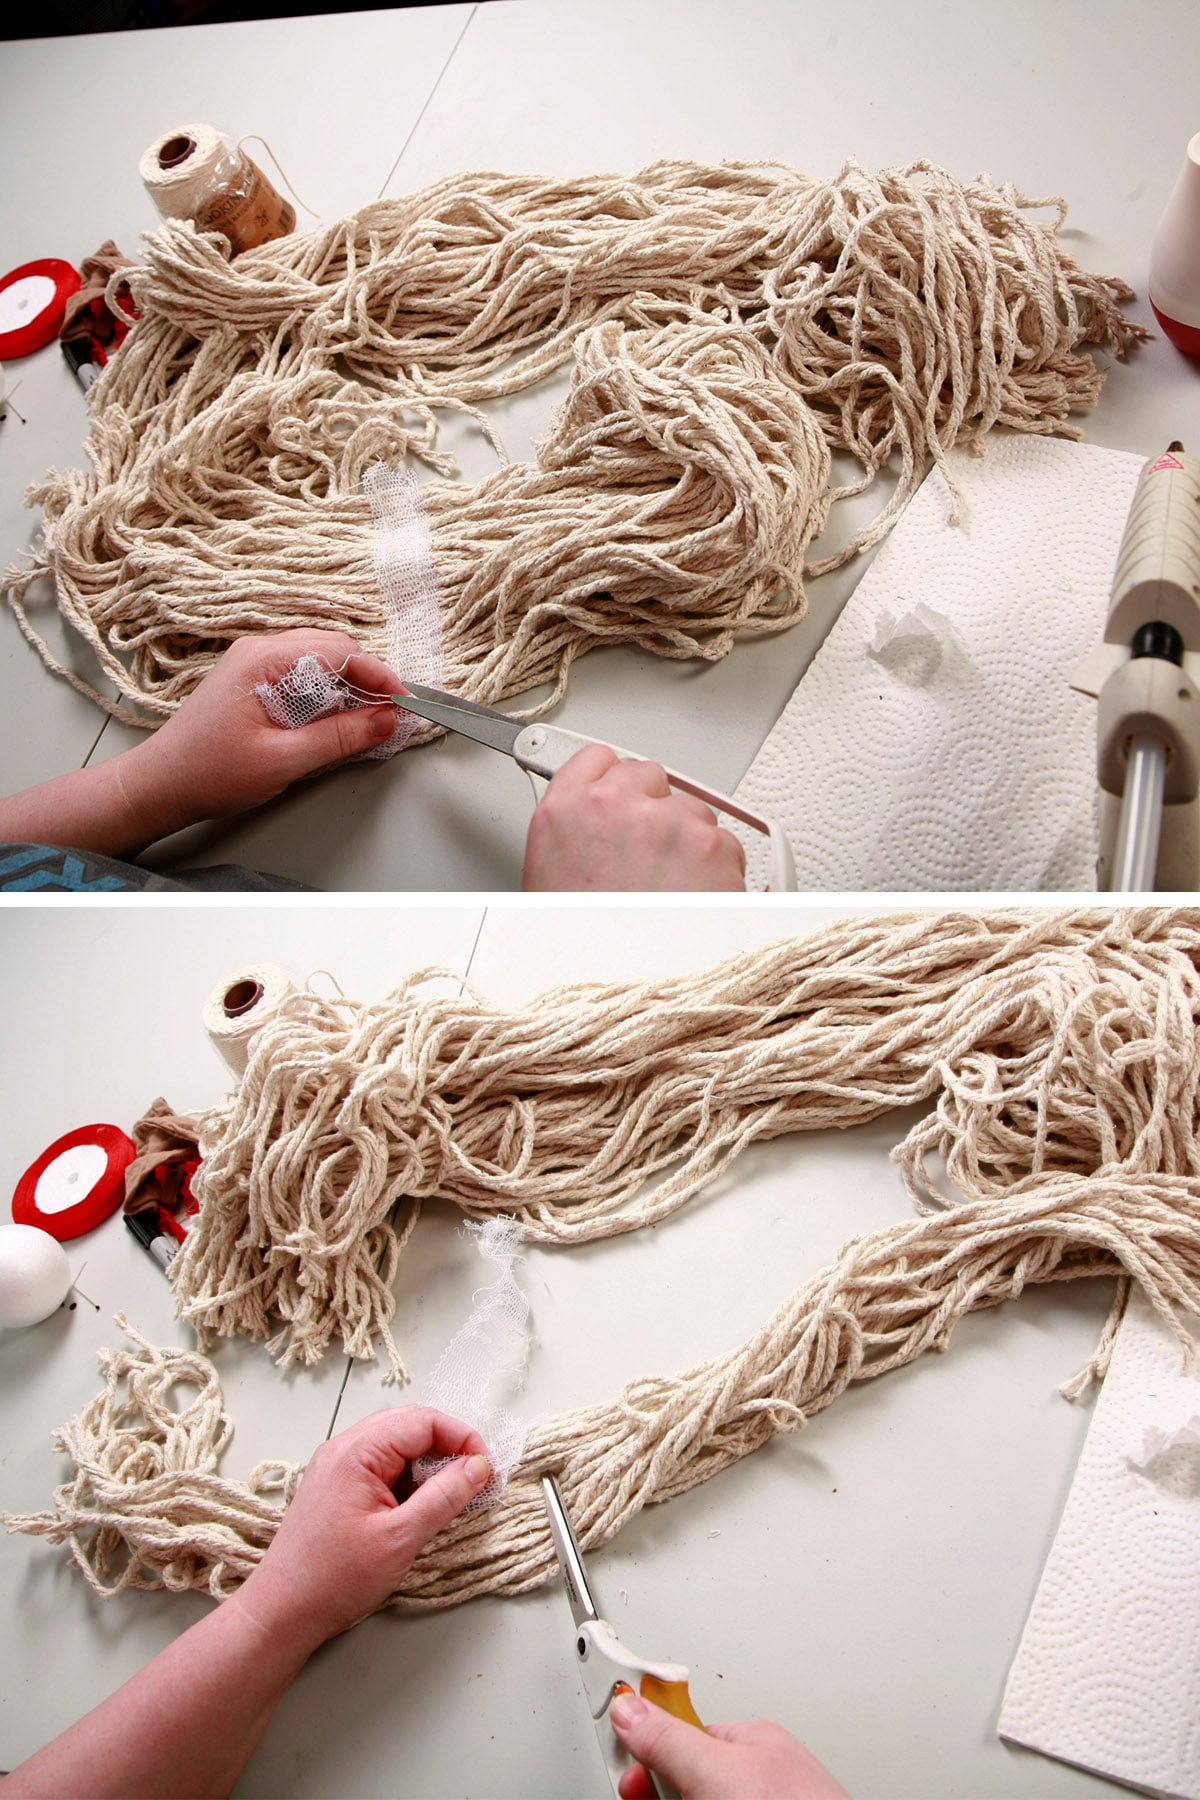 The binding being removed from the mop head.